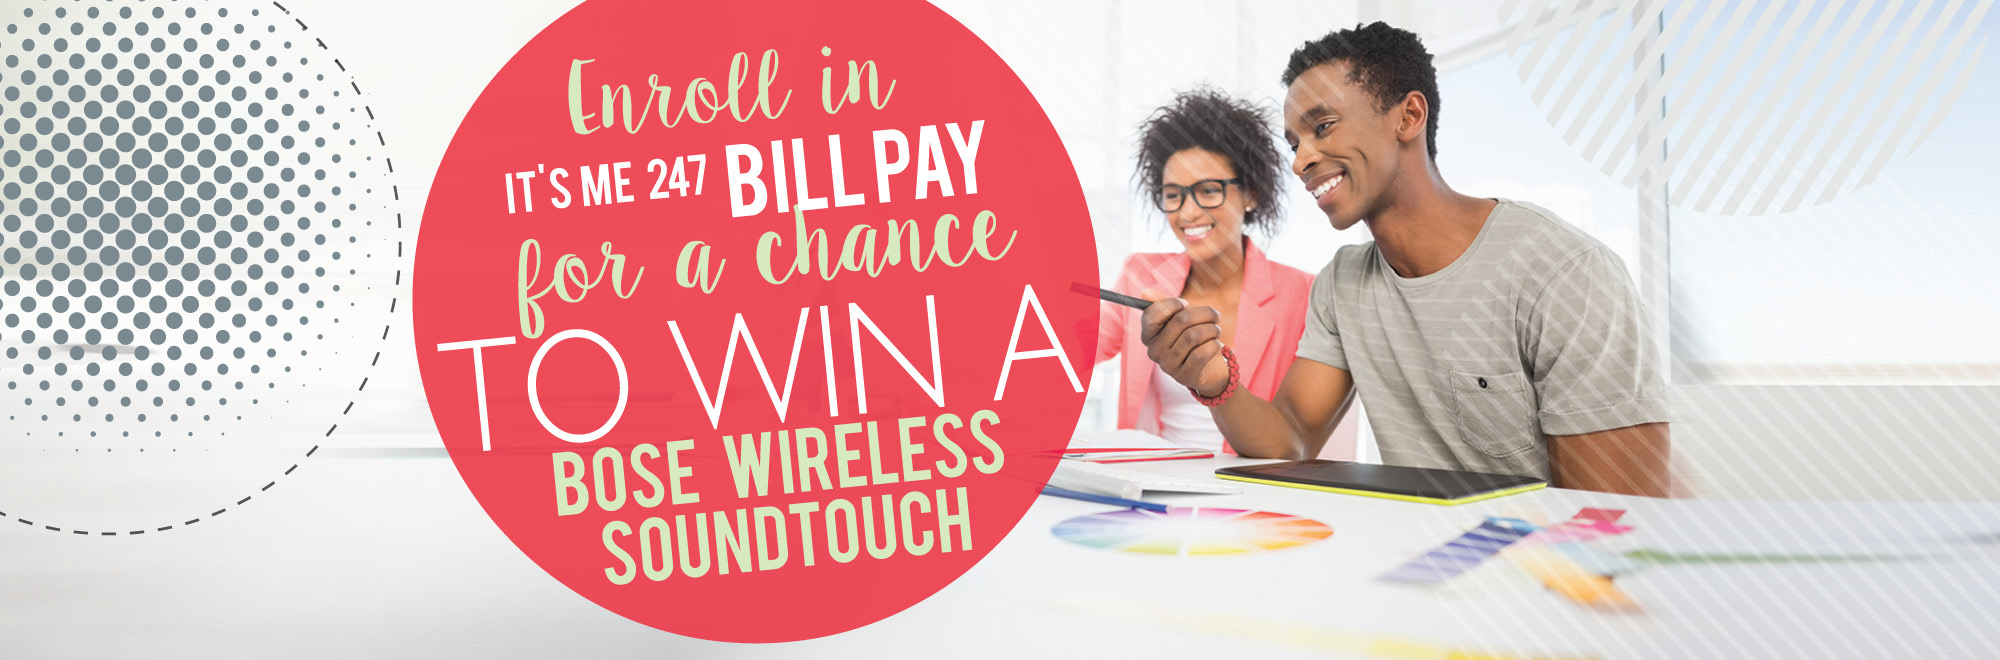 Sign up for Bill Pay for a chance to win a Bose Wireless Soundtouch